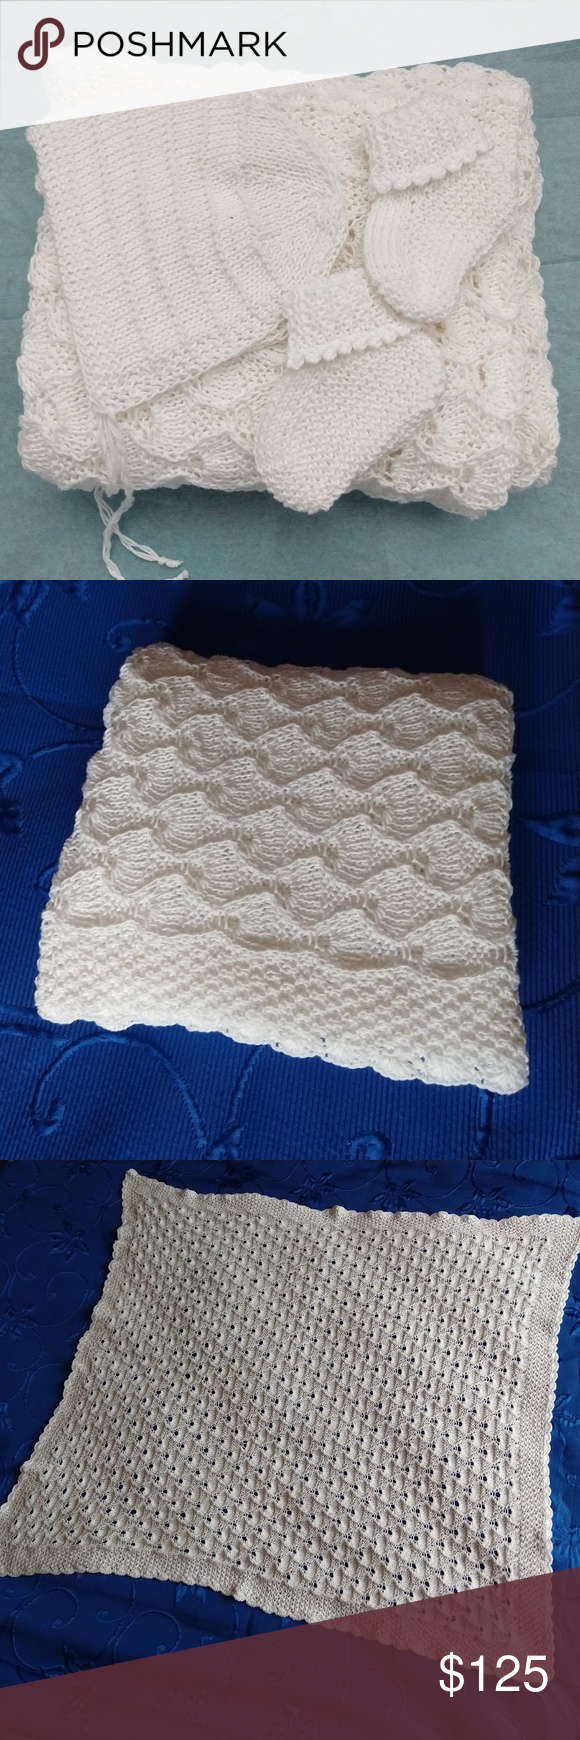 Hand Knitted 100 Pima Cotton White Baby Blanket Hand Knitting Knitted Baby Blanket Knitted